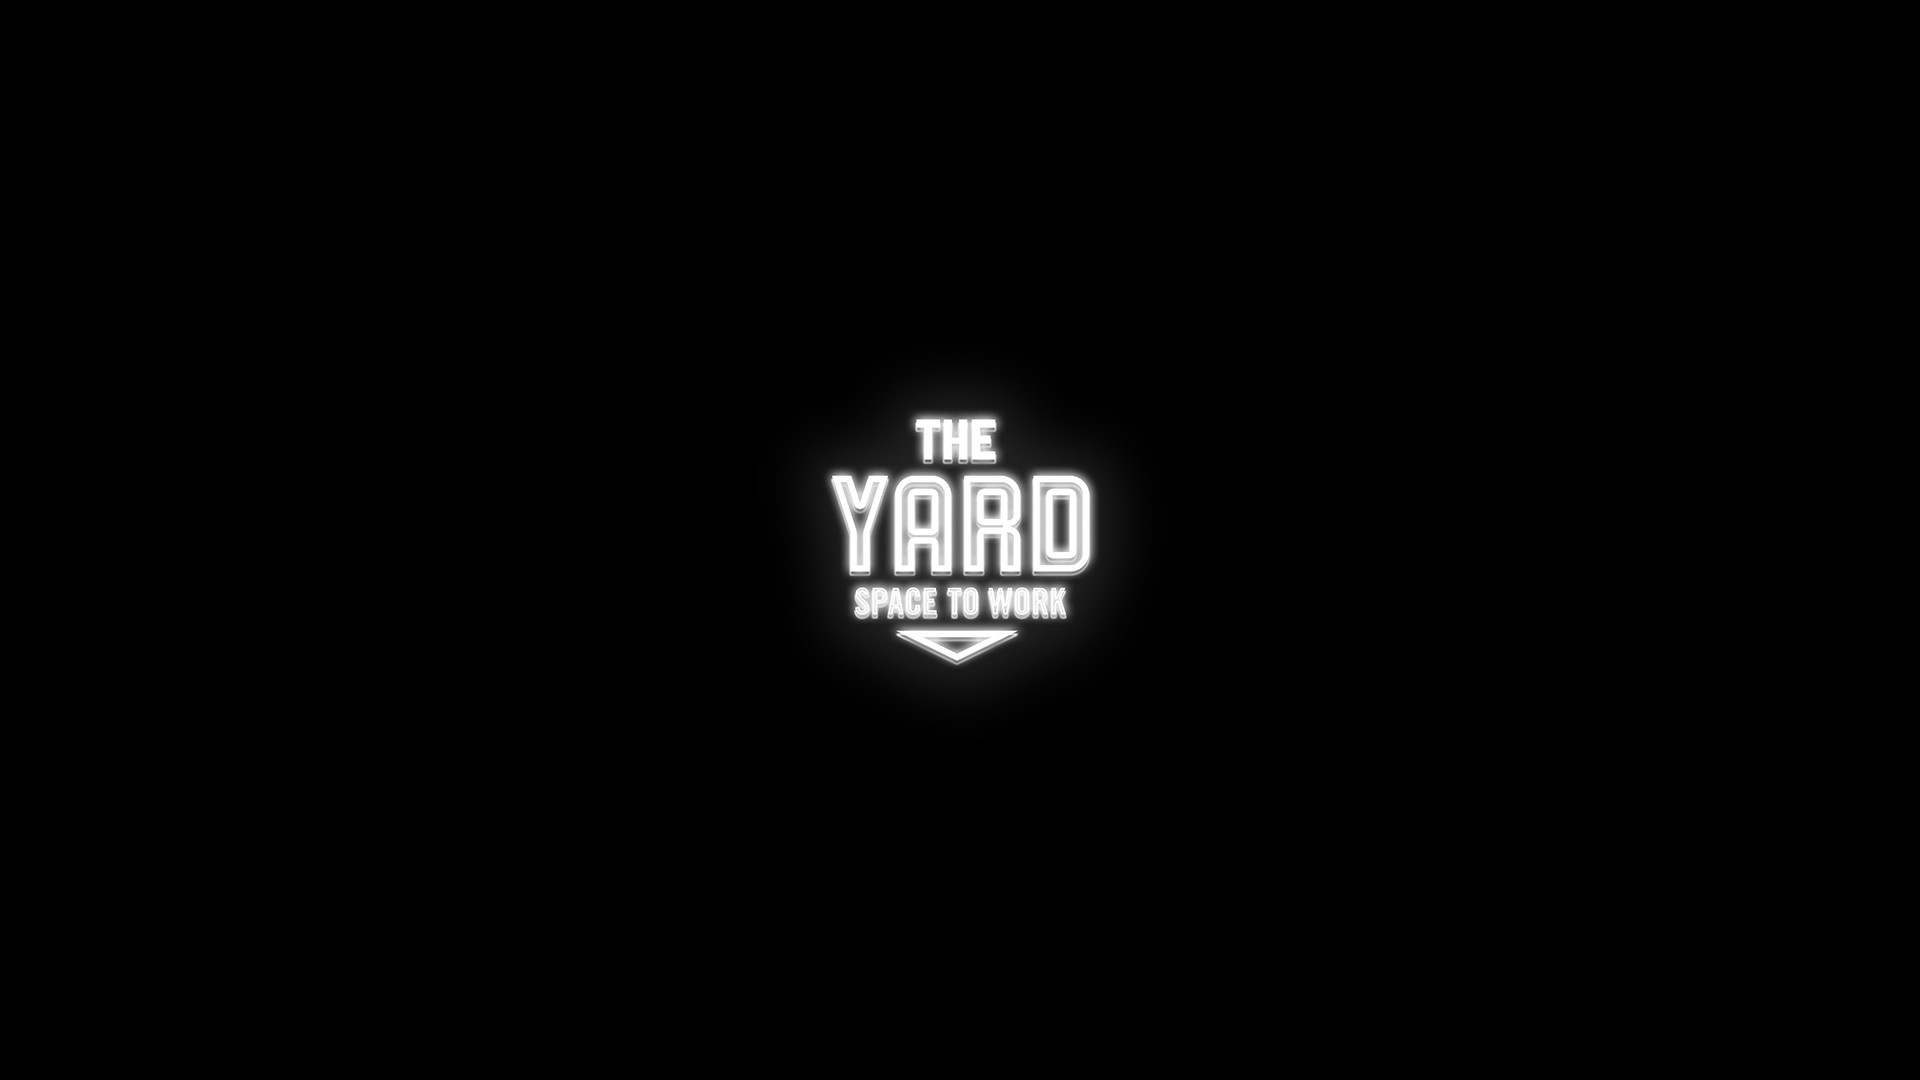 The Yard Website Design Preview